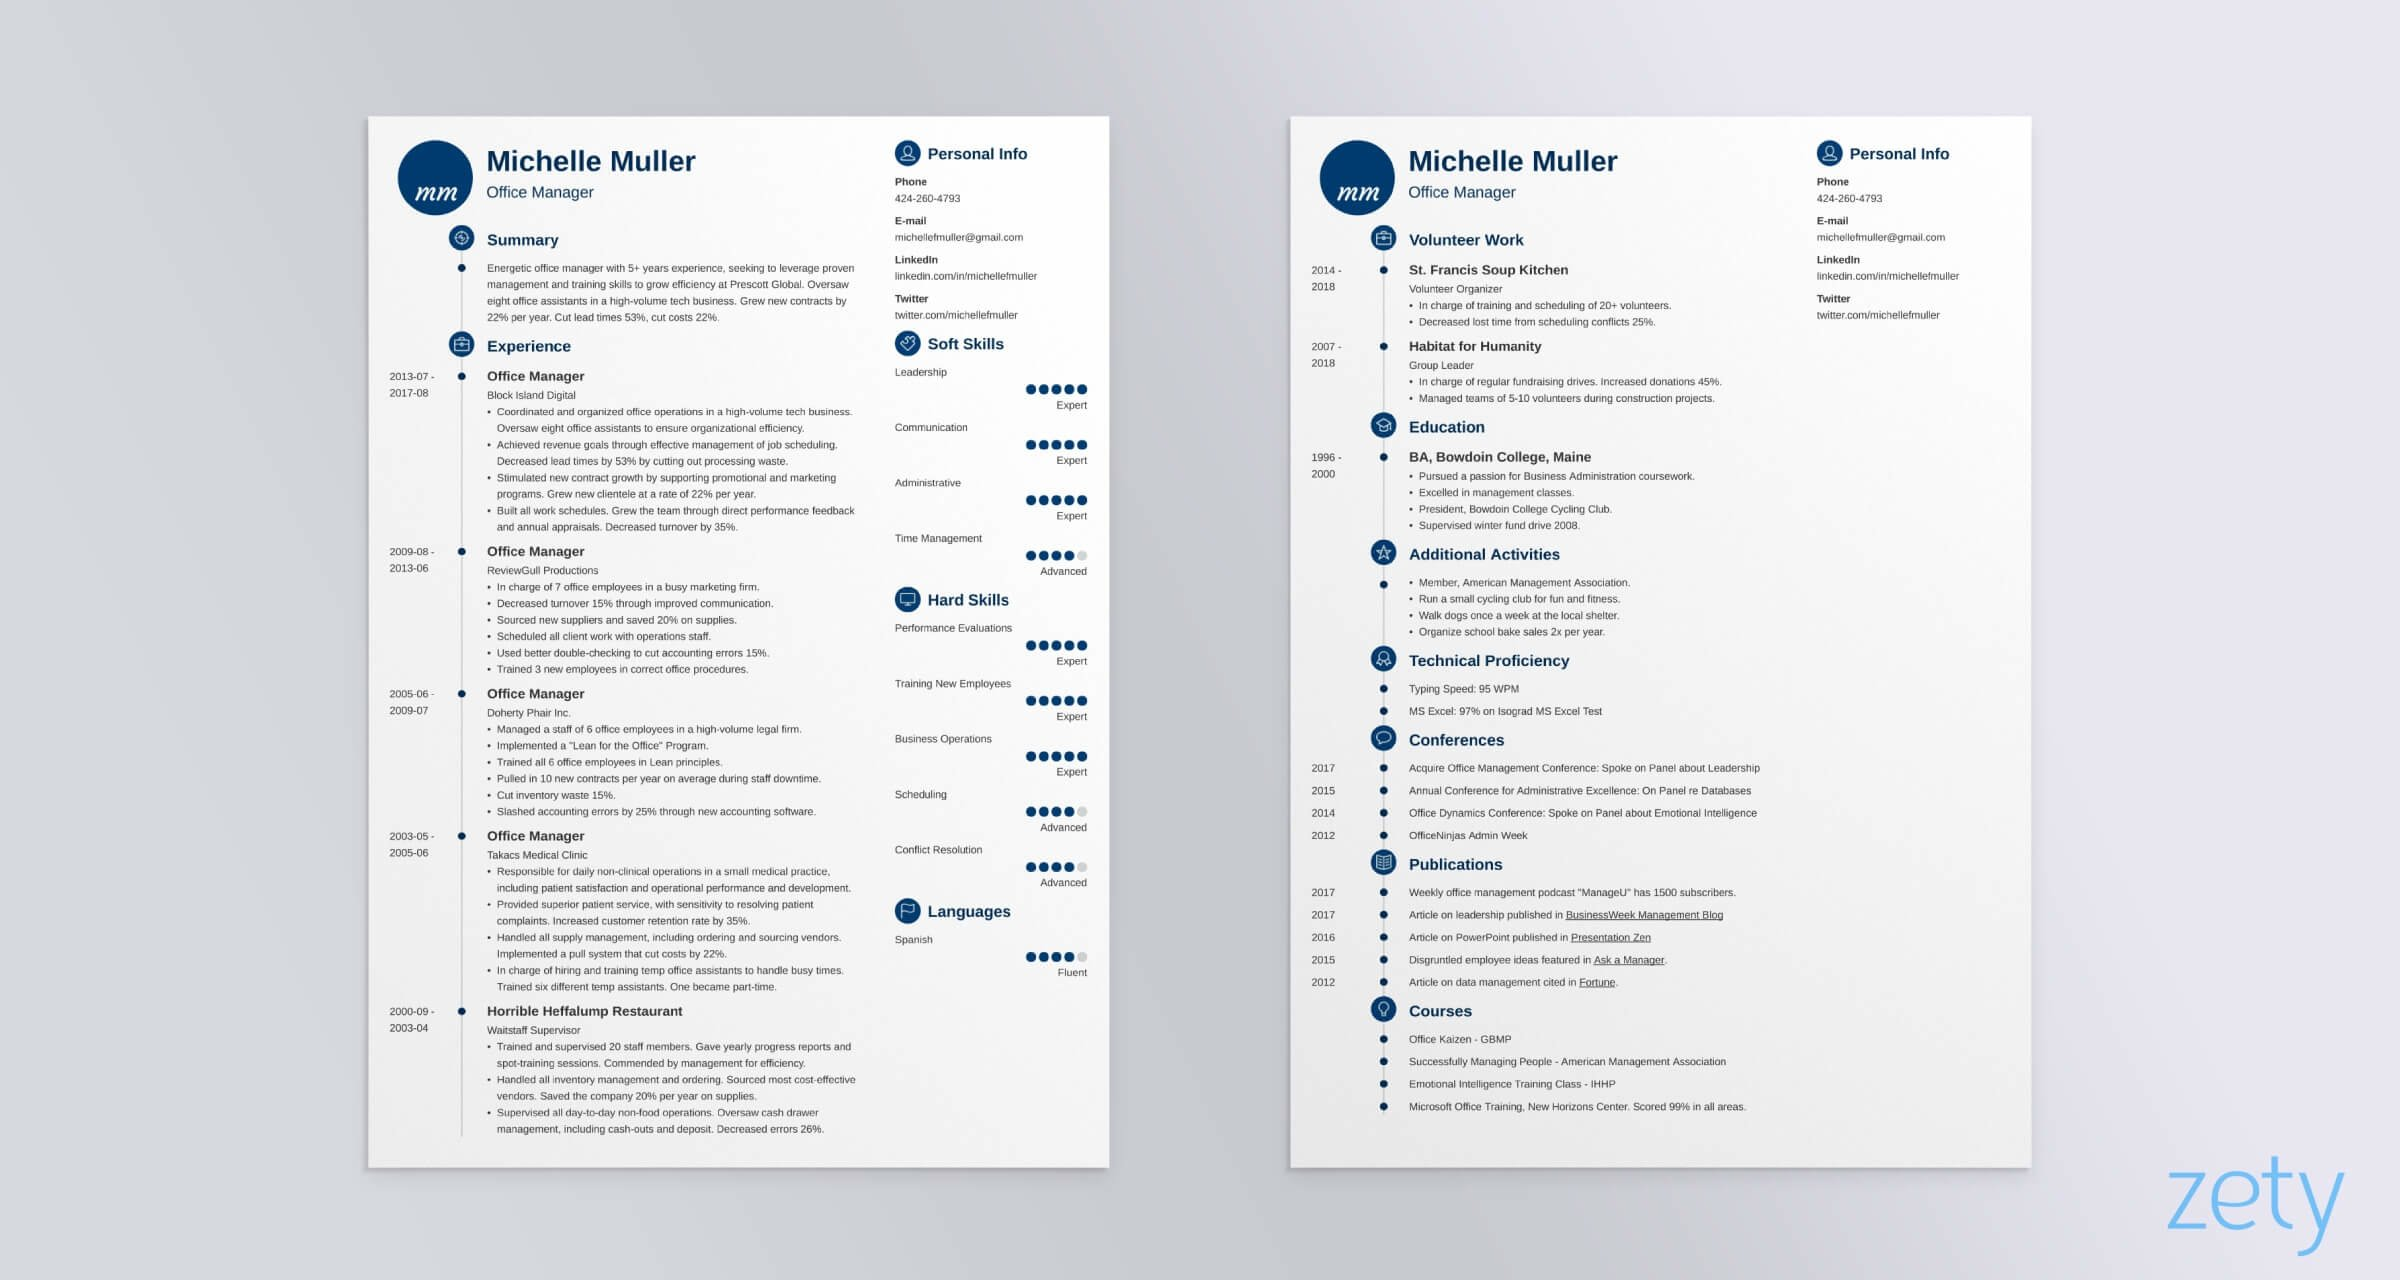 resume it crush your chances format tips one or two primo1 front desk master writer Resume One Page Or Two Page Resume